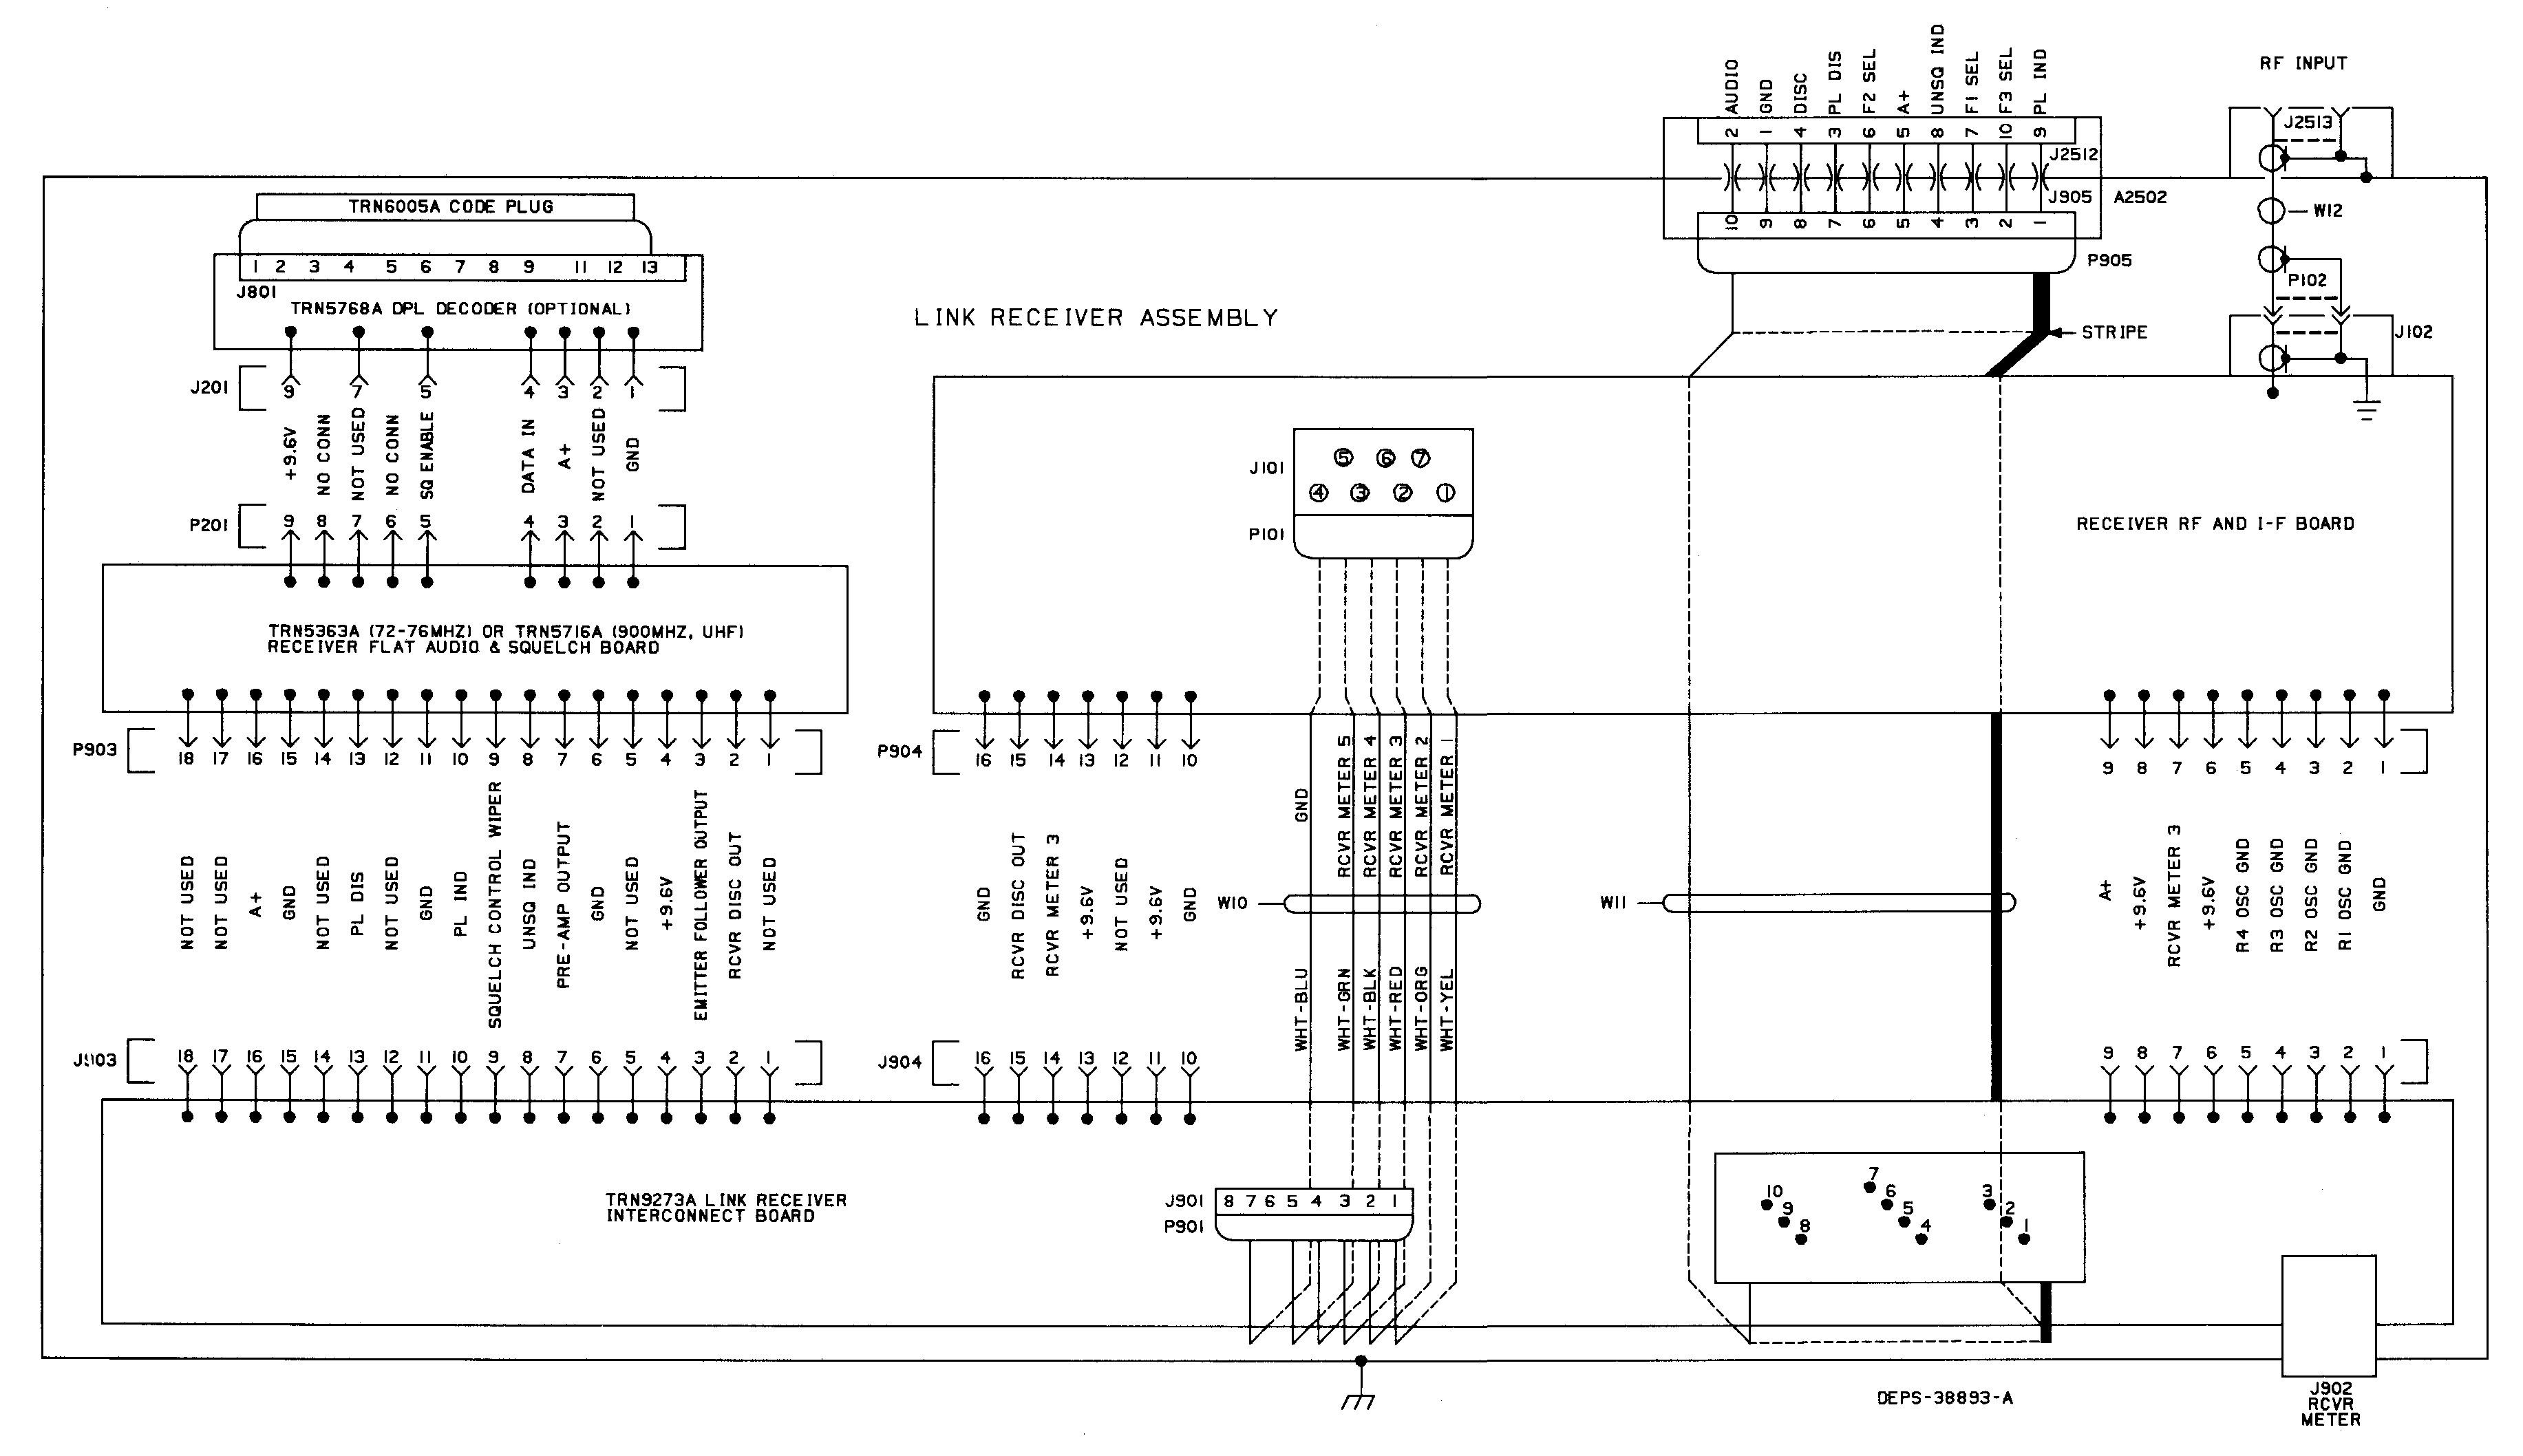 wiring diagram interfacing the purc5000 link receiver interconnection wiring diagram at webbmarketing.co